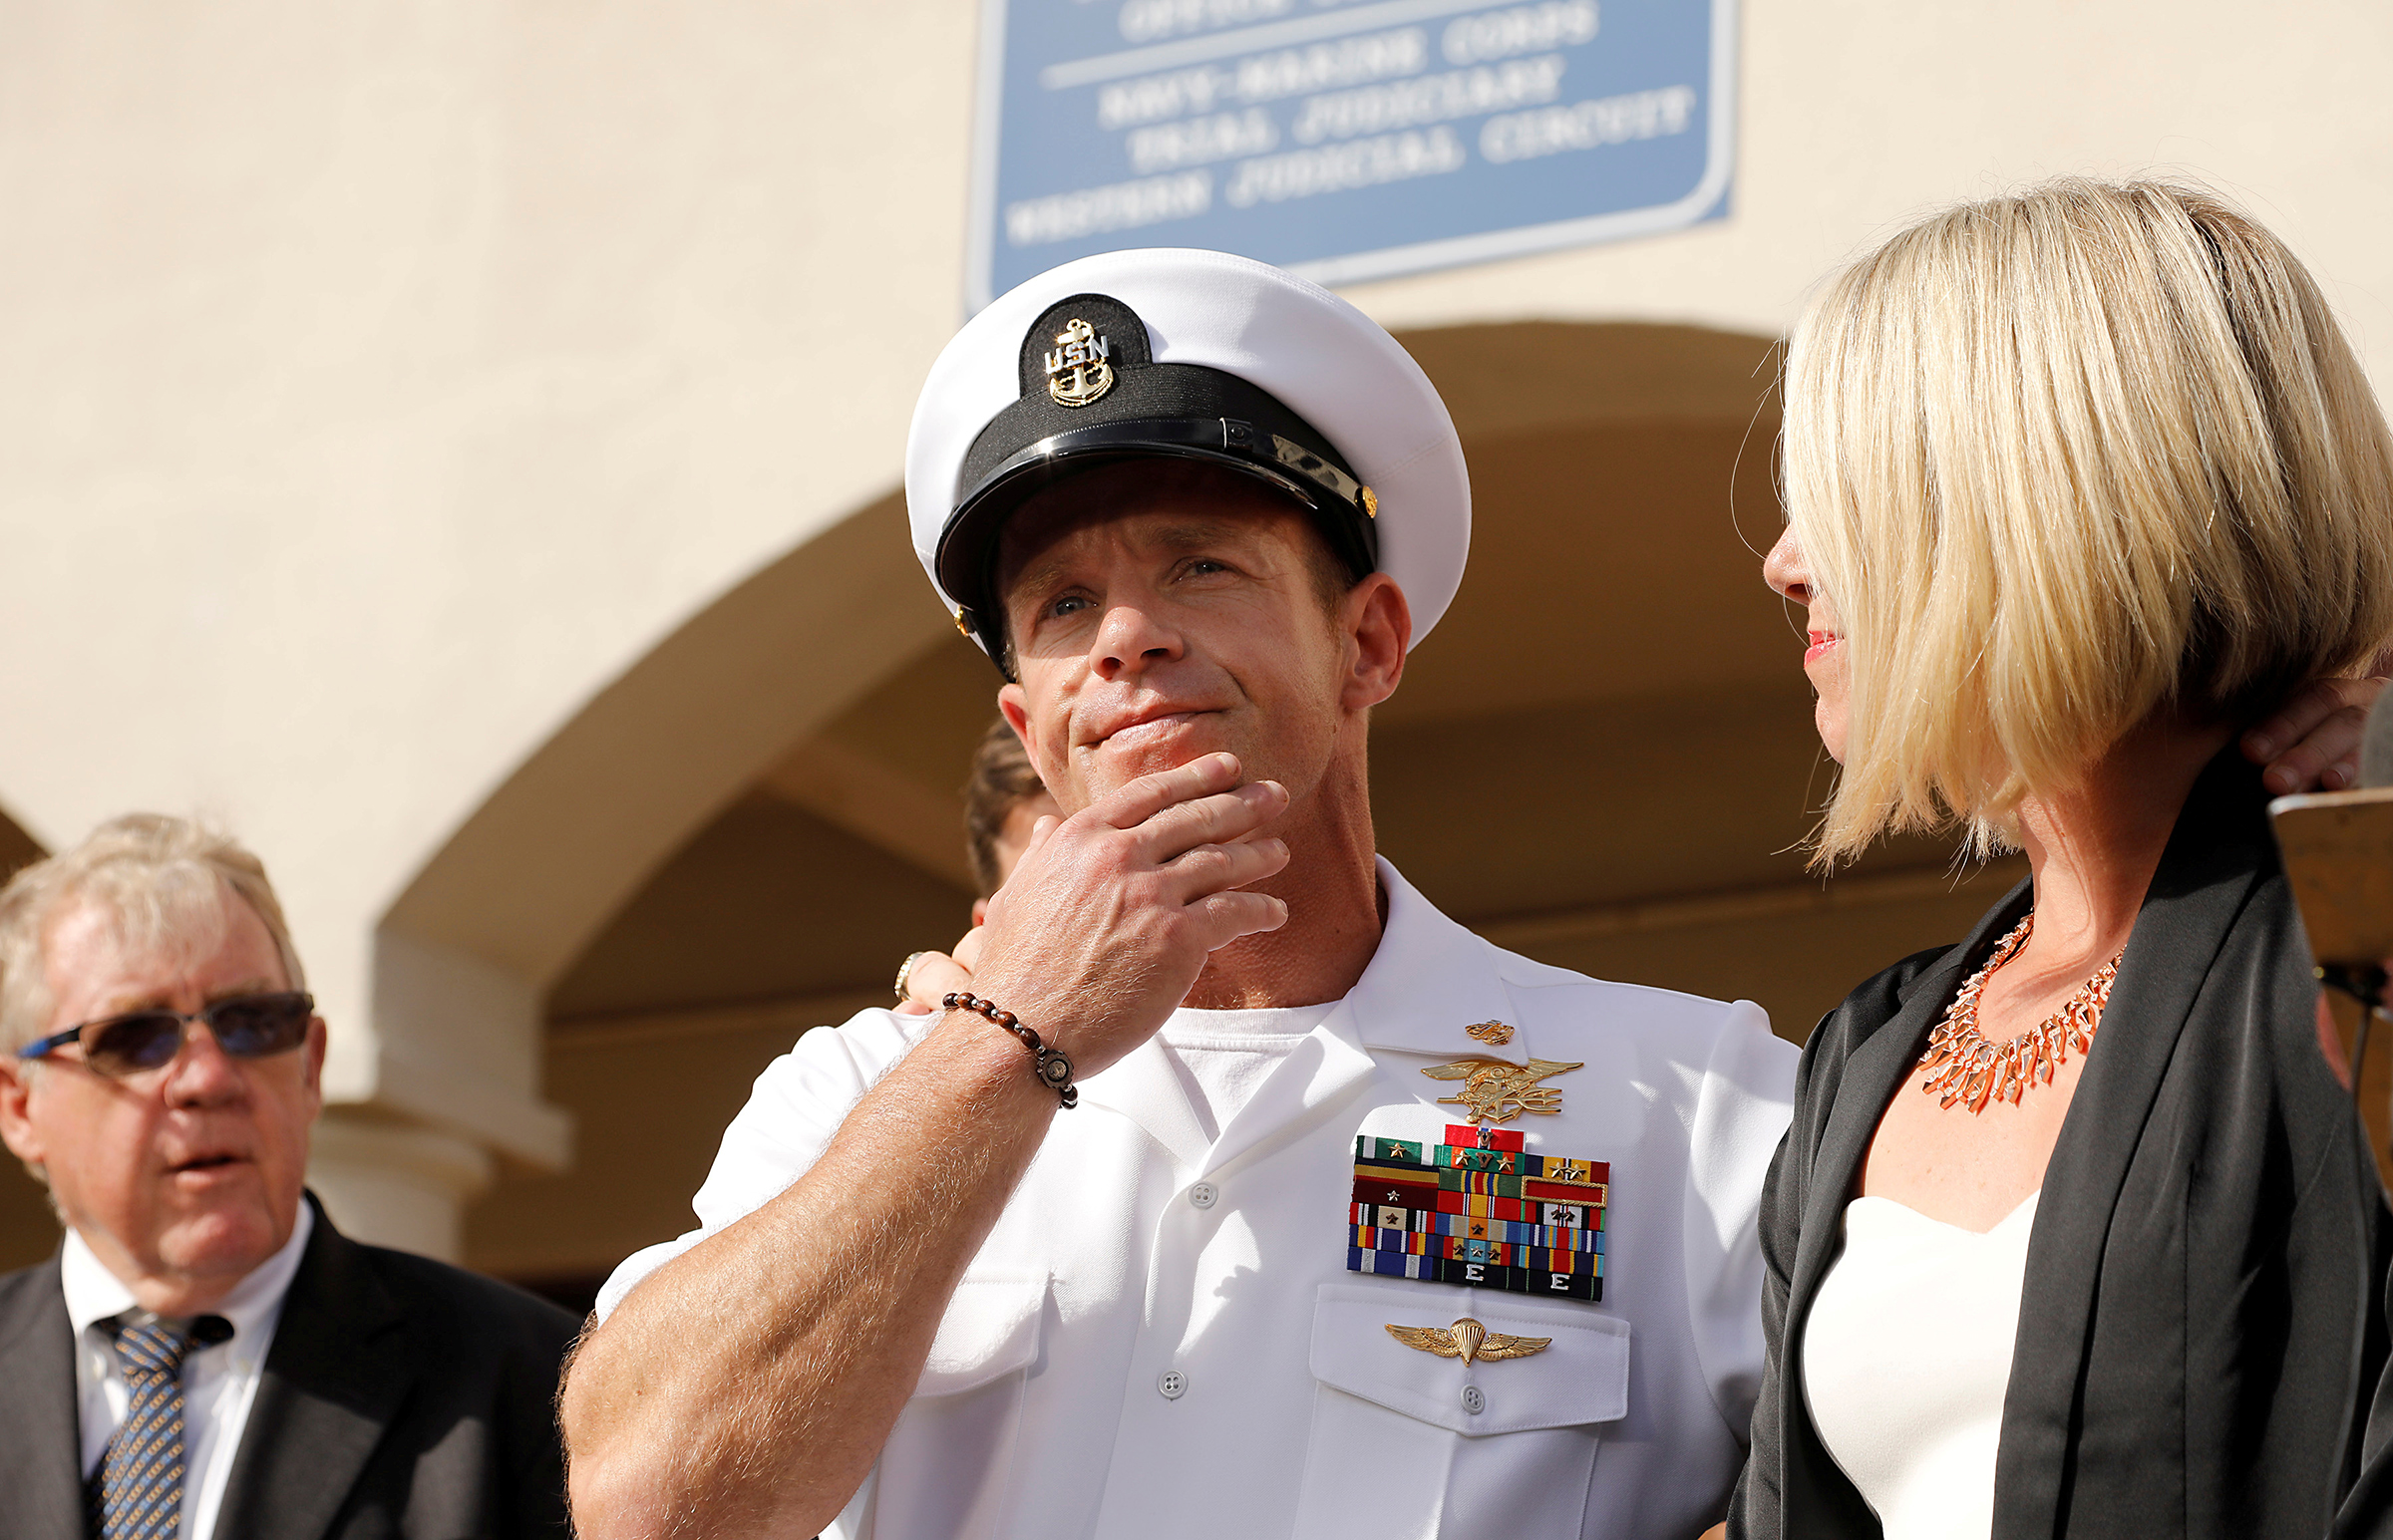 U.S. Navy SEAL Special Operations Chief Edward Gallagher prepares to answer a question from the media after being acquitted on most of the serious charges against him during his court-martial trial at Naval Base San Diego in San Diego, California on July 2,  2019.